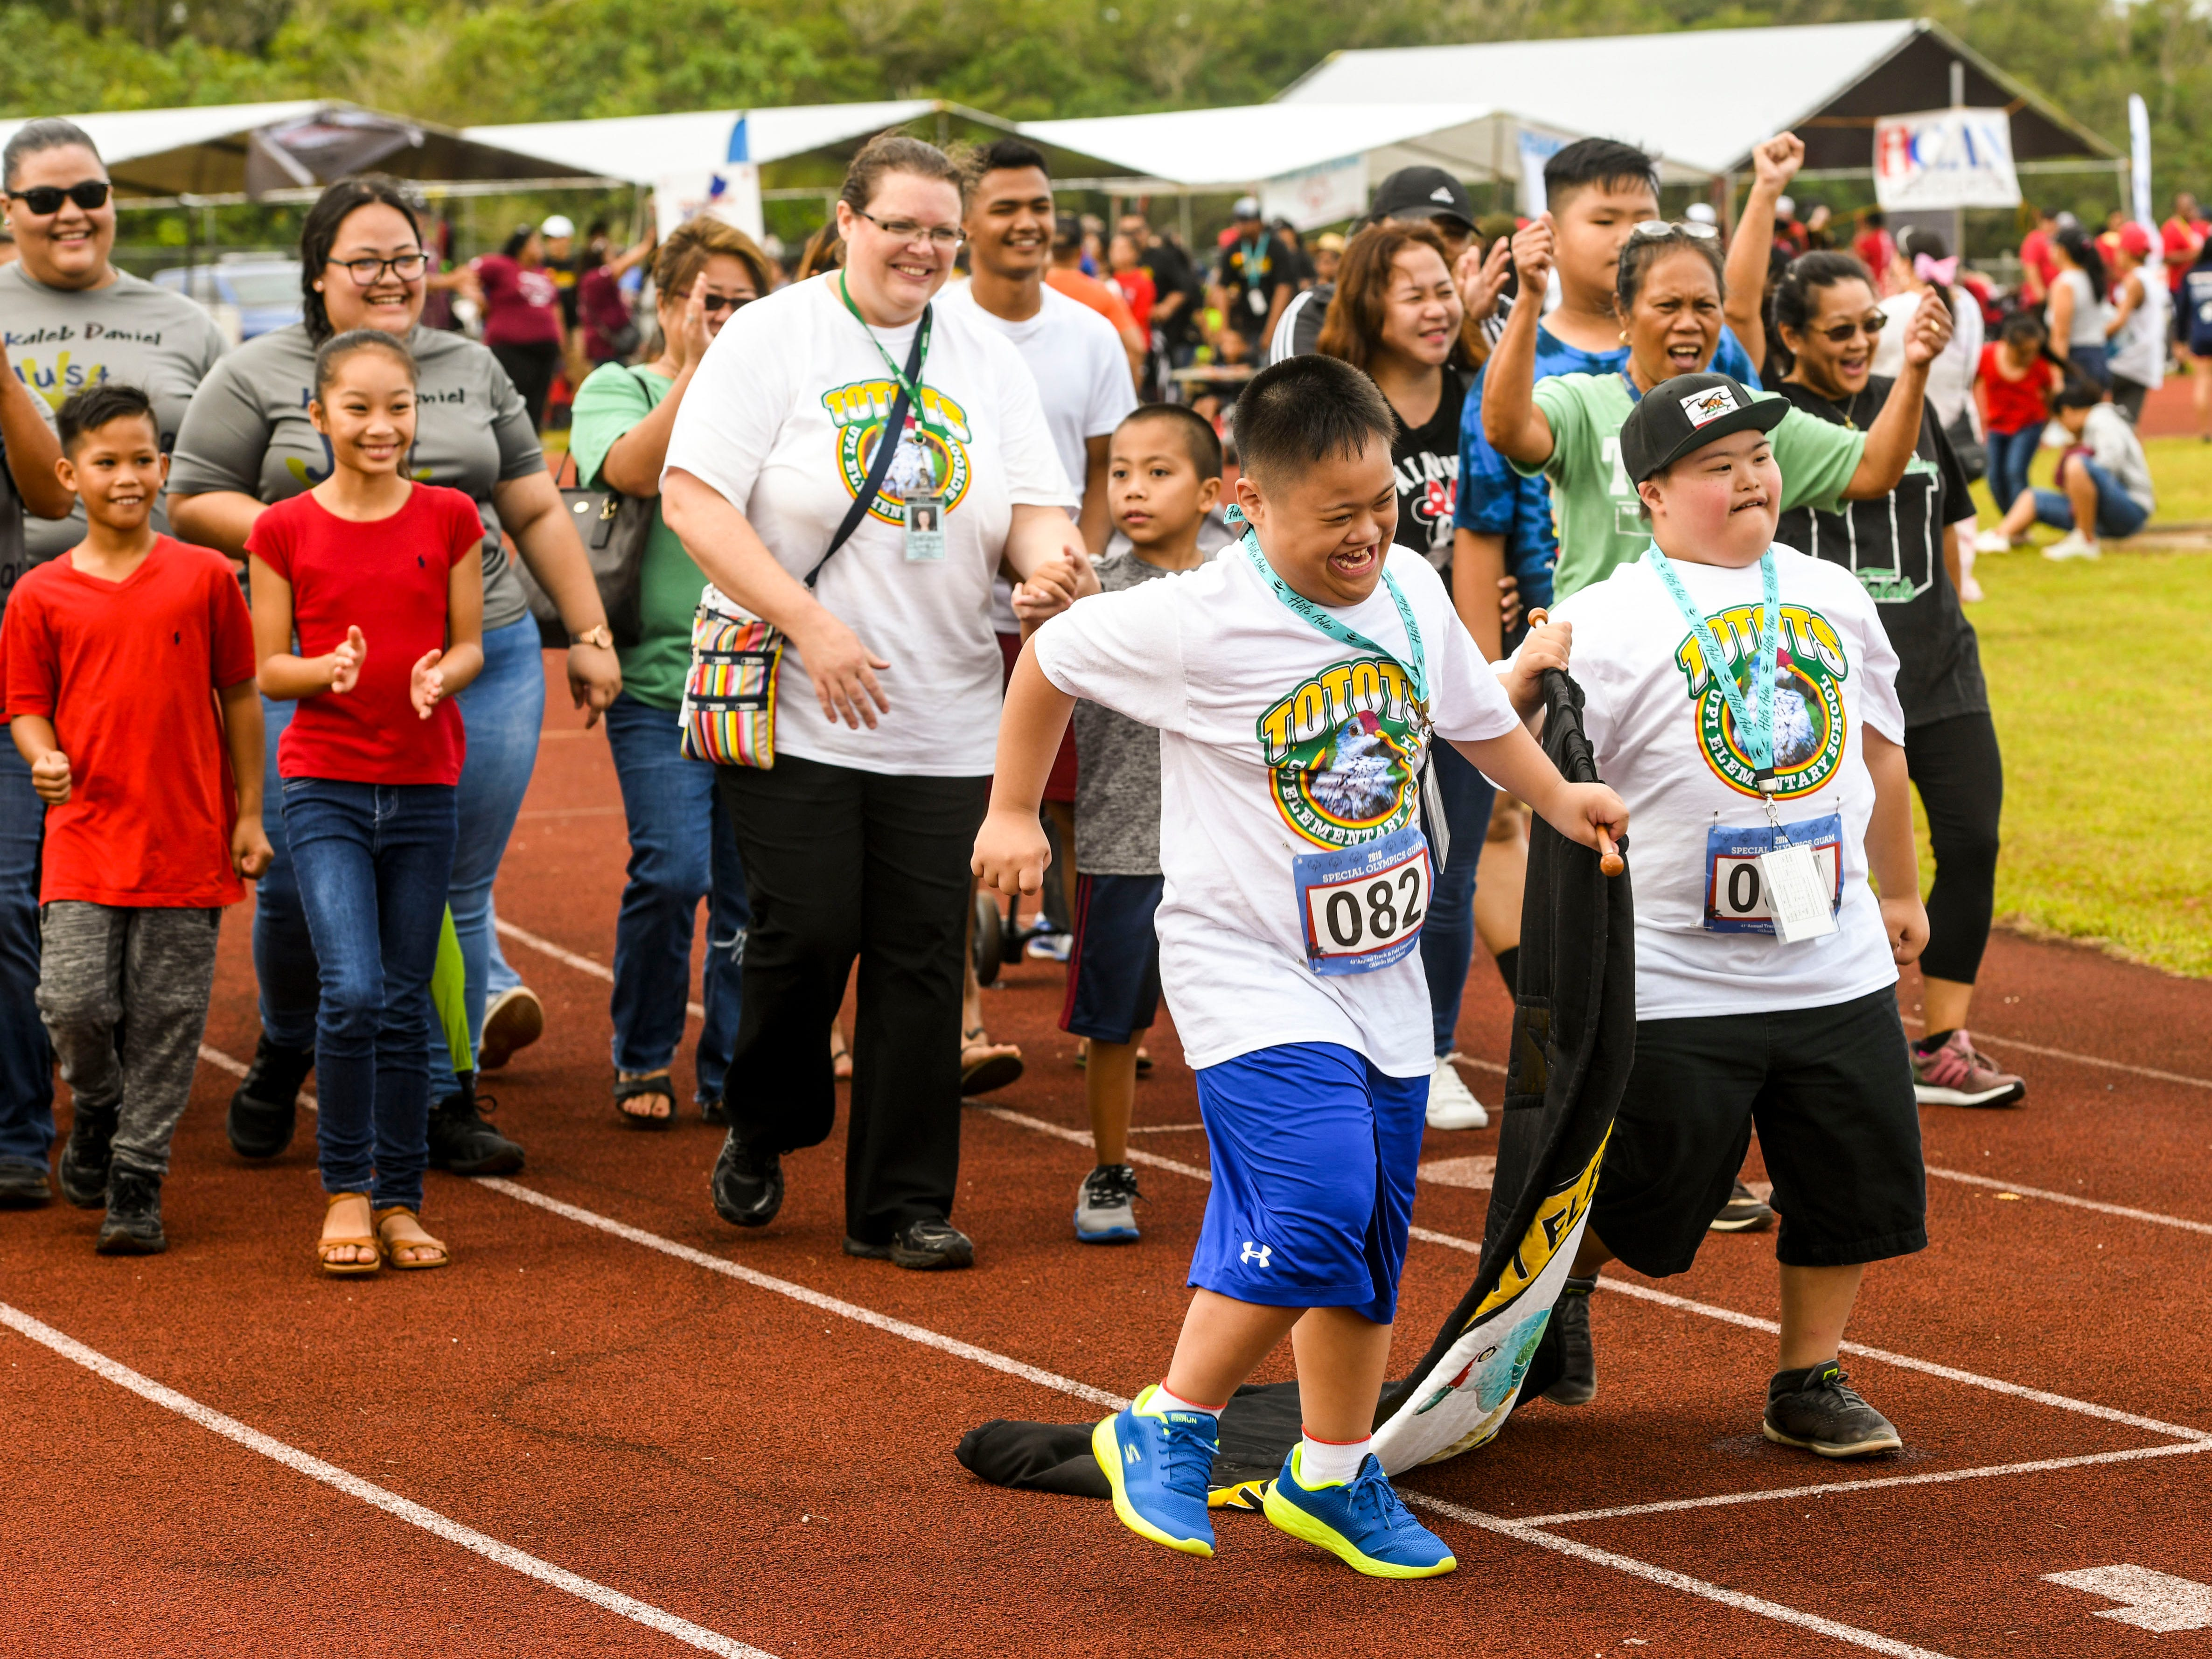 Special Olympians Jacob Palad, front left, and Kaleb Cruz give a little celebration dance as they serve as banner carriers for the Upi Elementary School delegation during the 43rd Special Olympics Guam Track & Field competition at Okkodo High School in Dededo on Saturday, March 16, 2019.